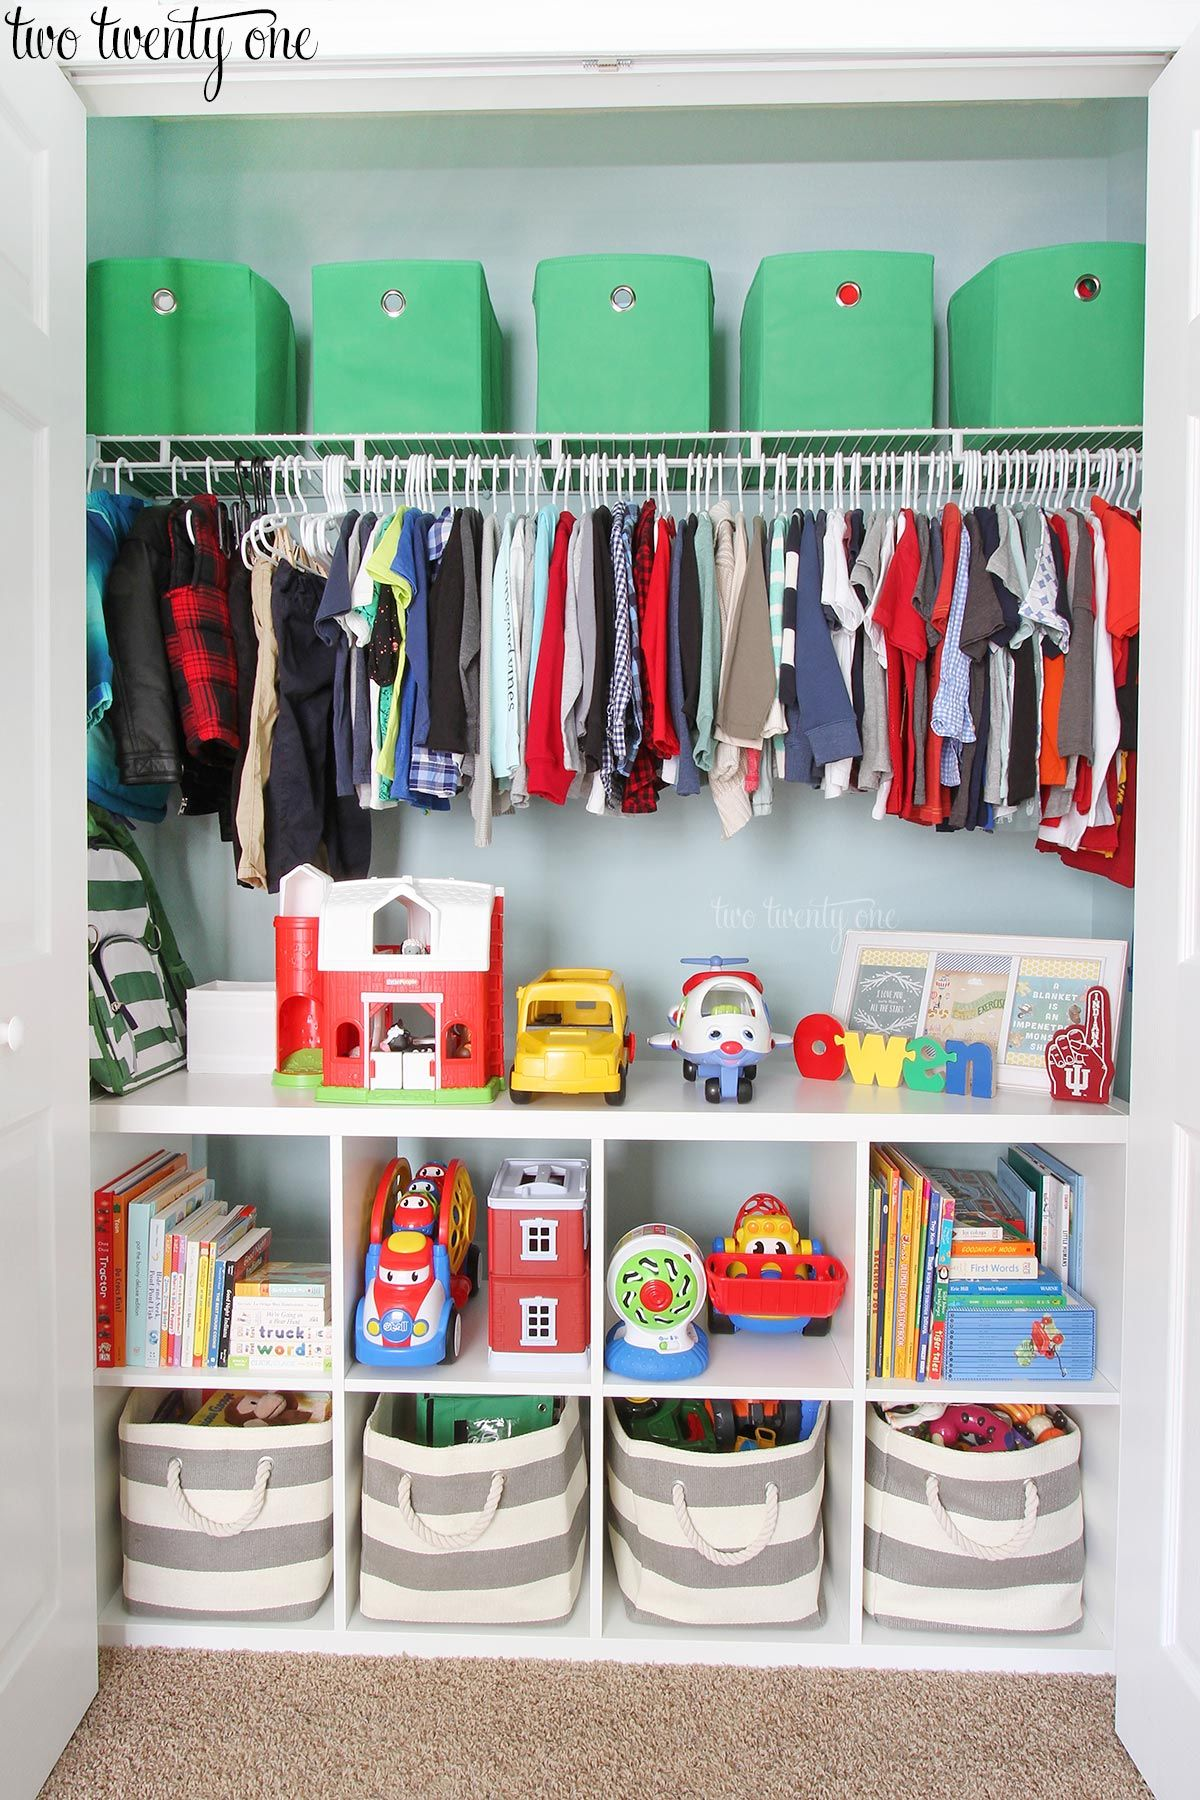 Kids Closet - Tips for Organization images